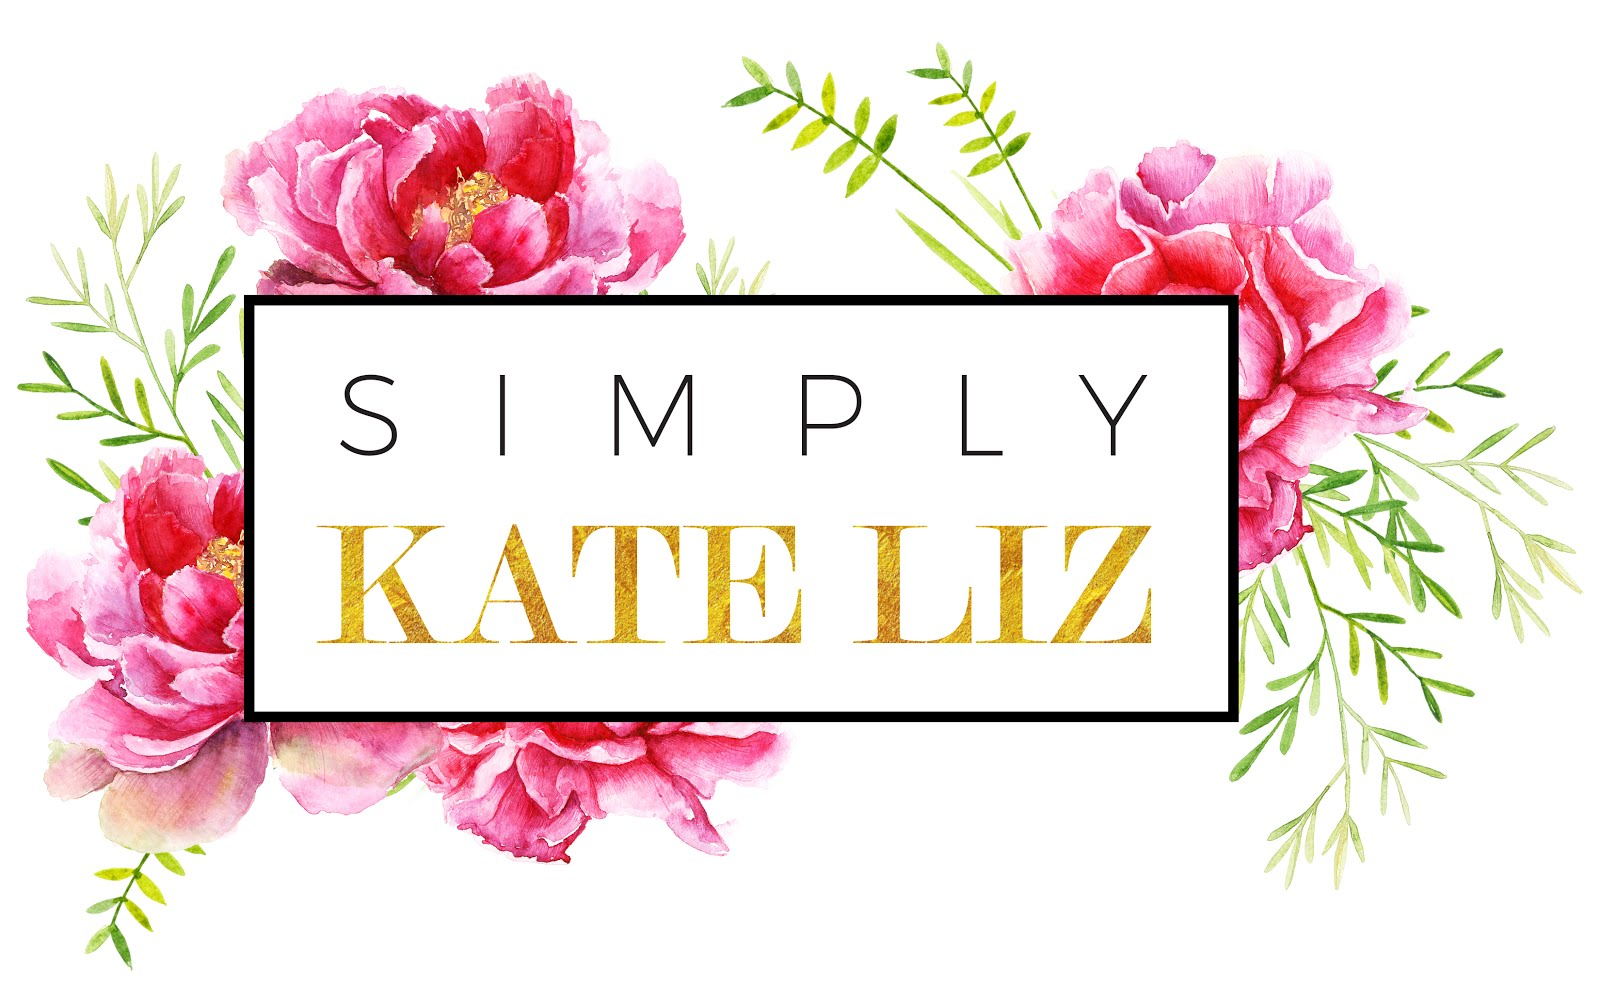 Simply Kate Liz